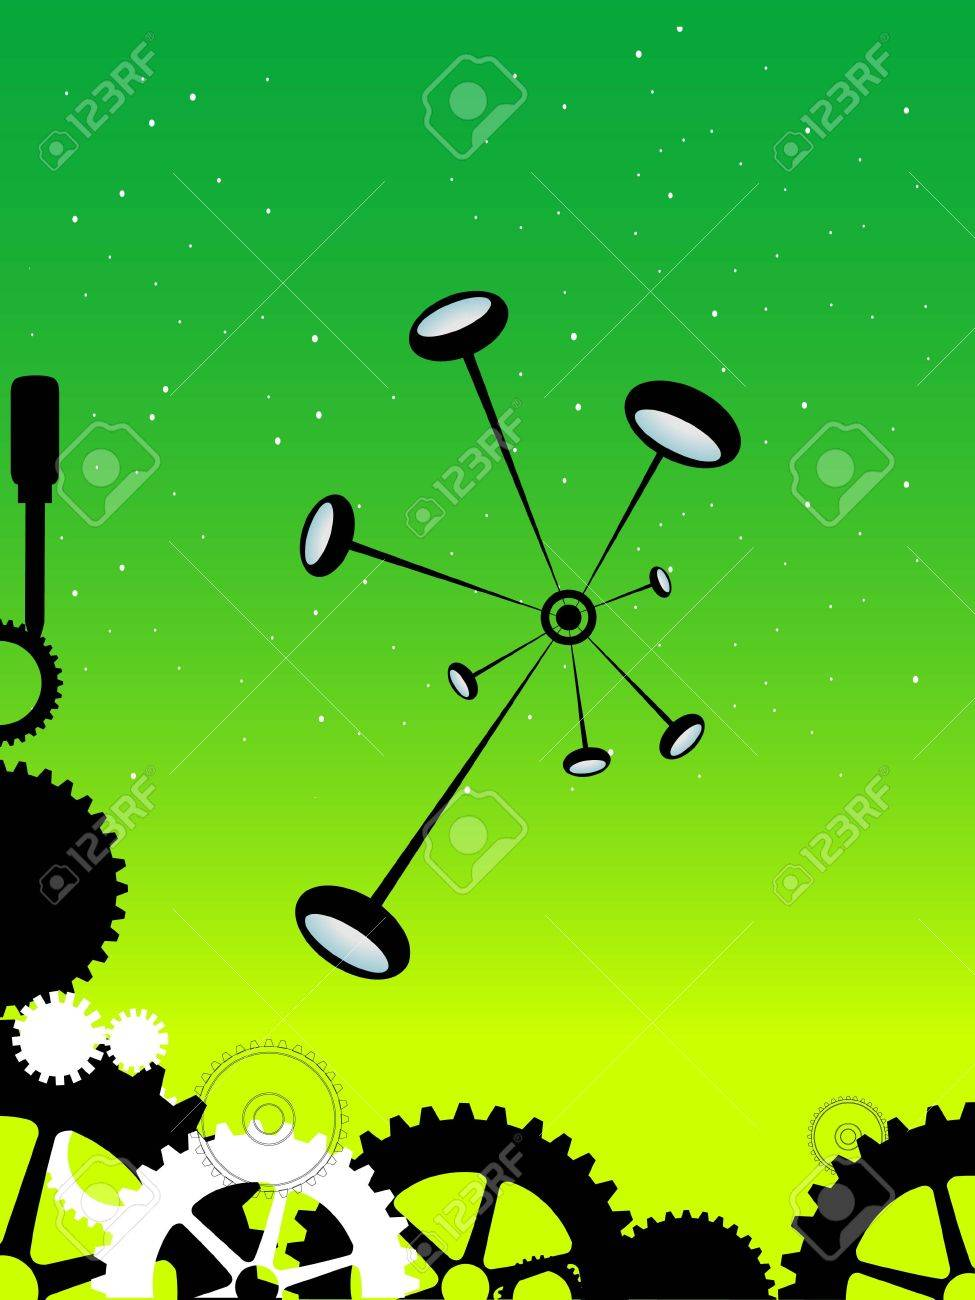 bond of molecules and cogs on gradient background Stock Photo - 3310960